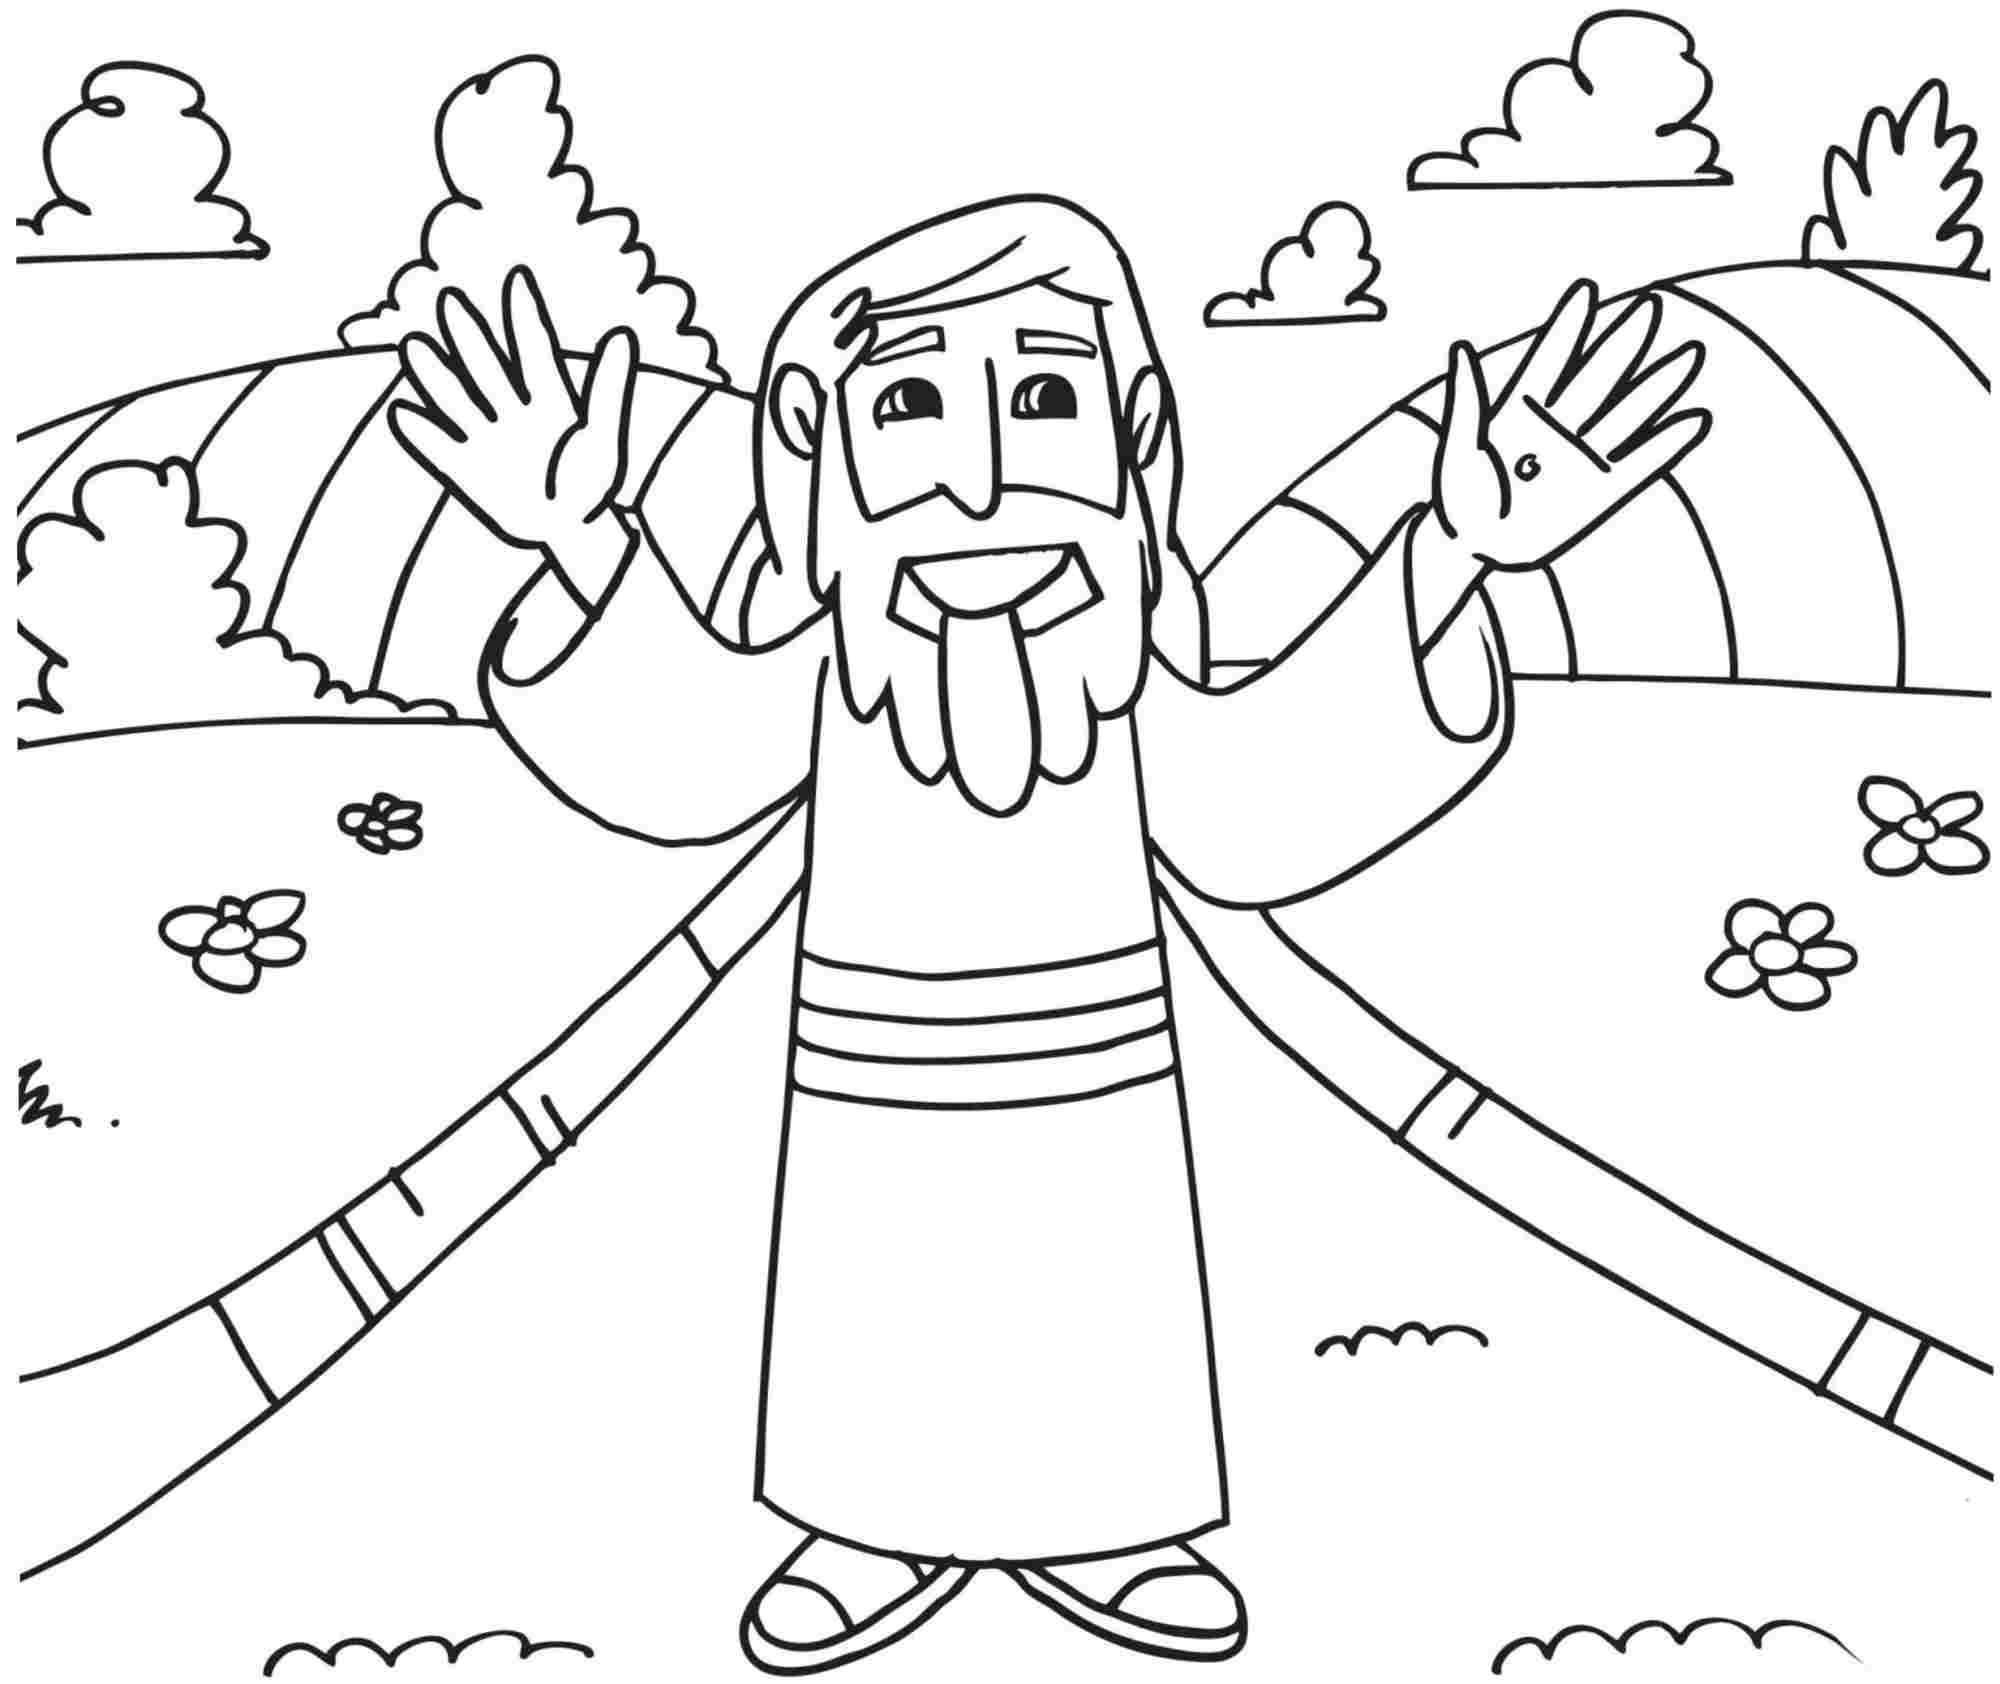 free printable christian coloring pages for easter | Religious Easter Coloring Pages Printable at GetDrawings ...